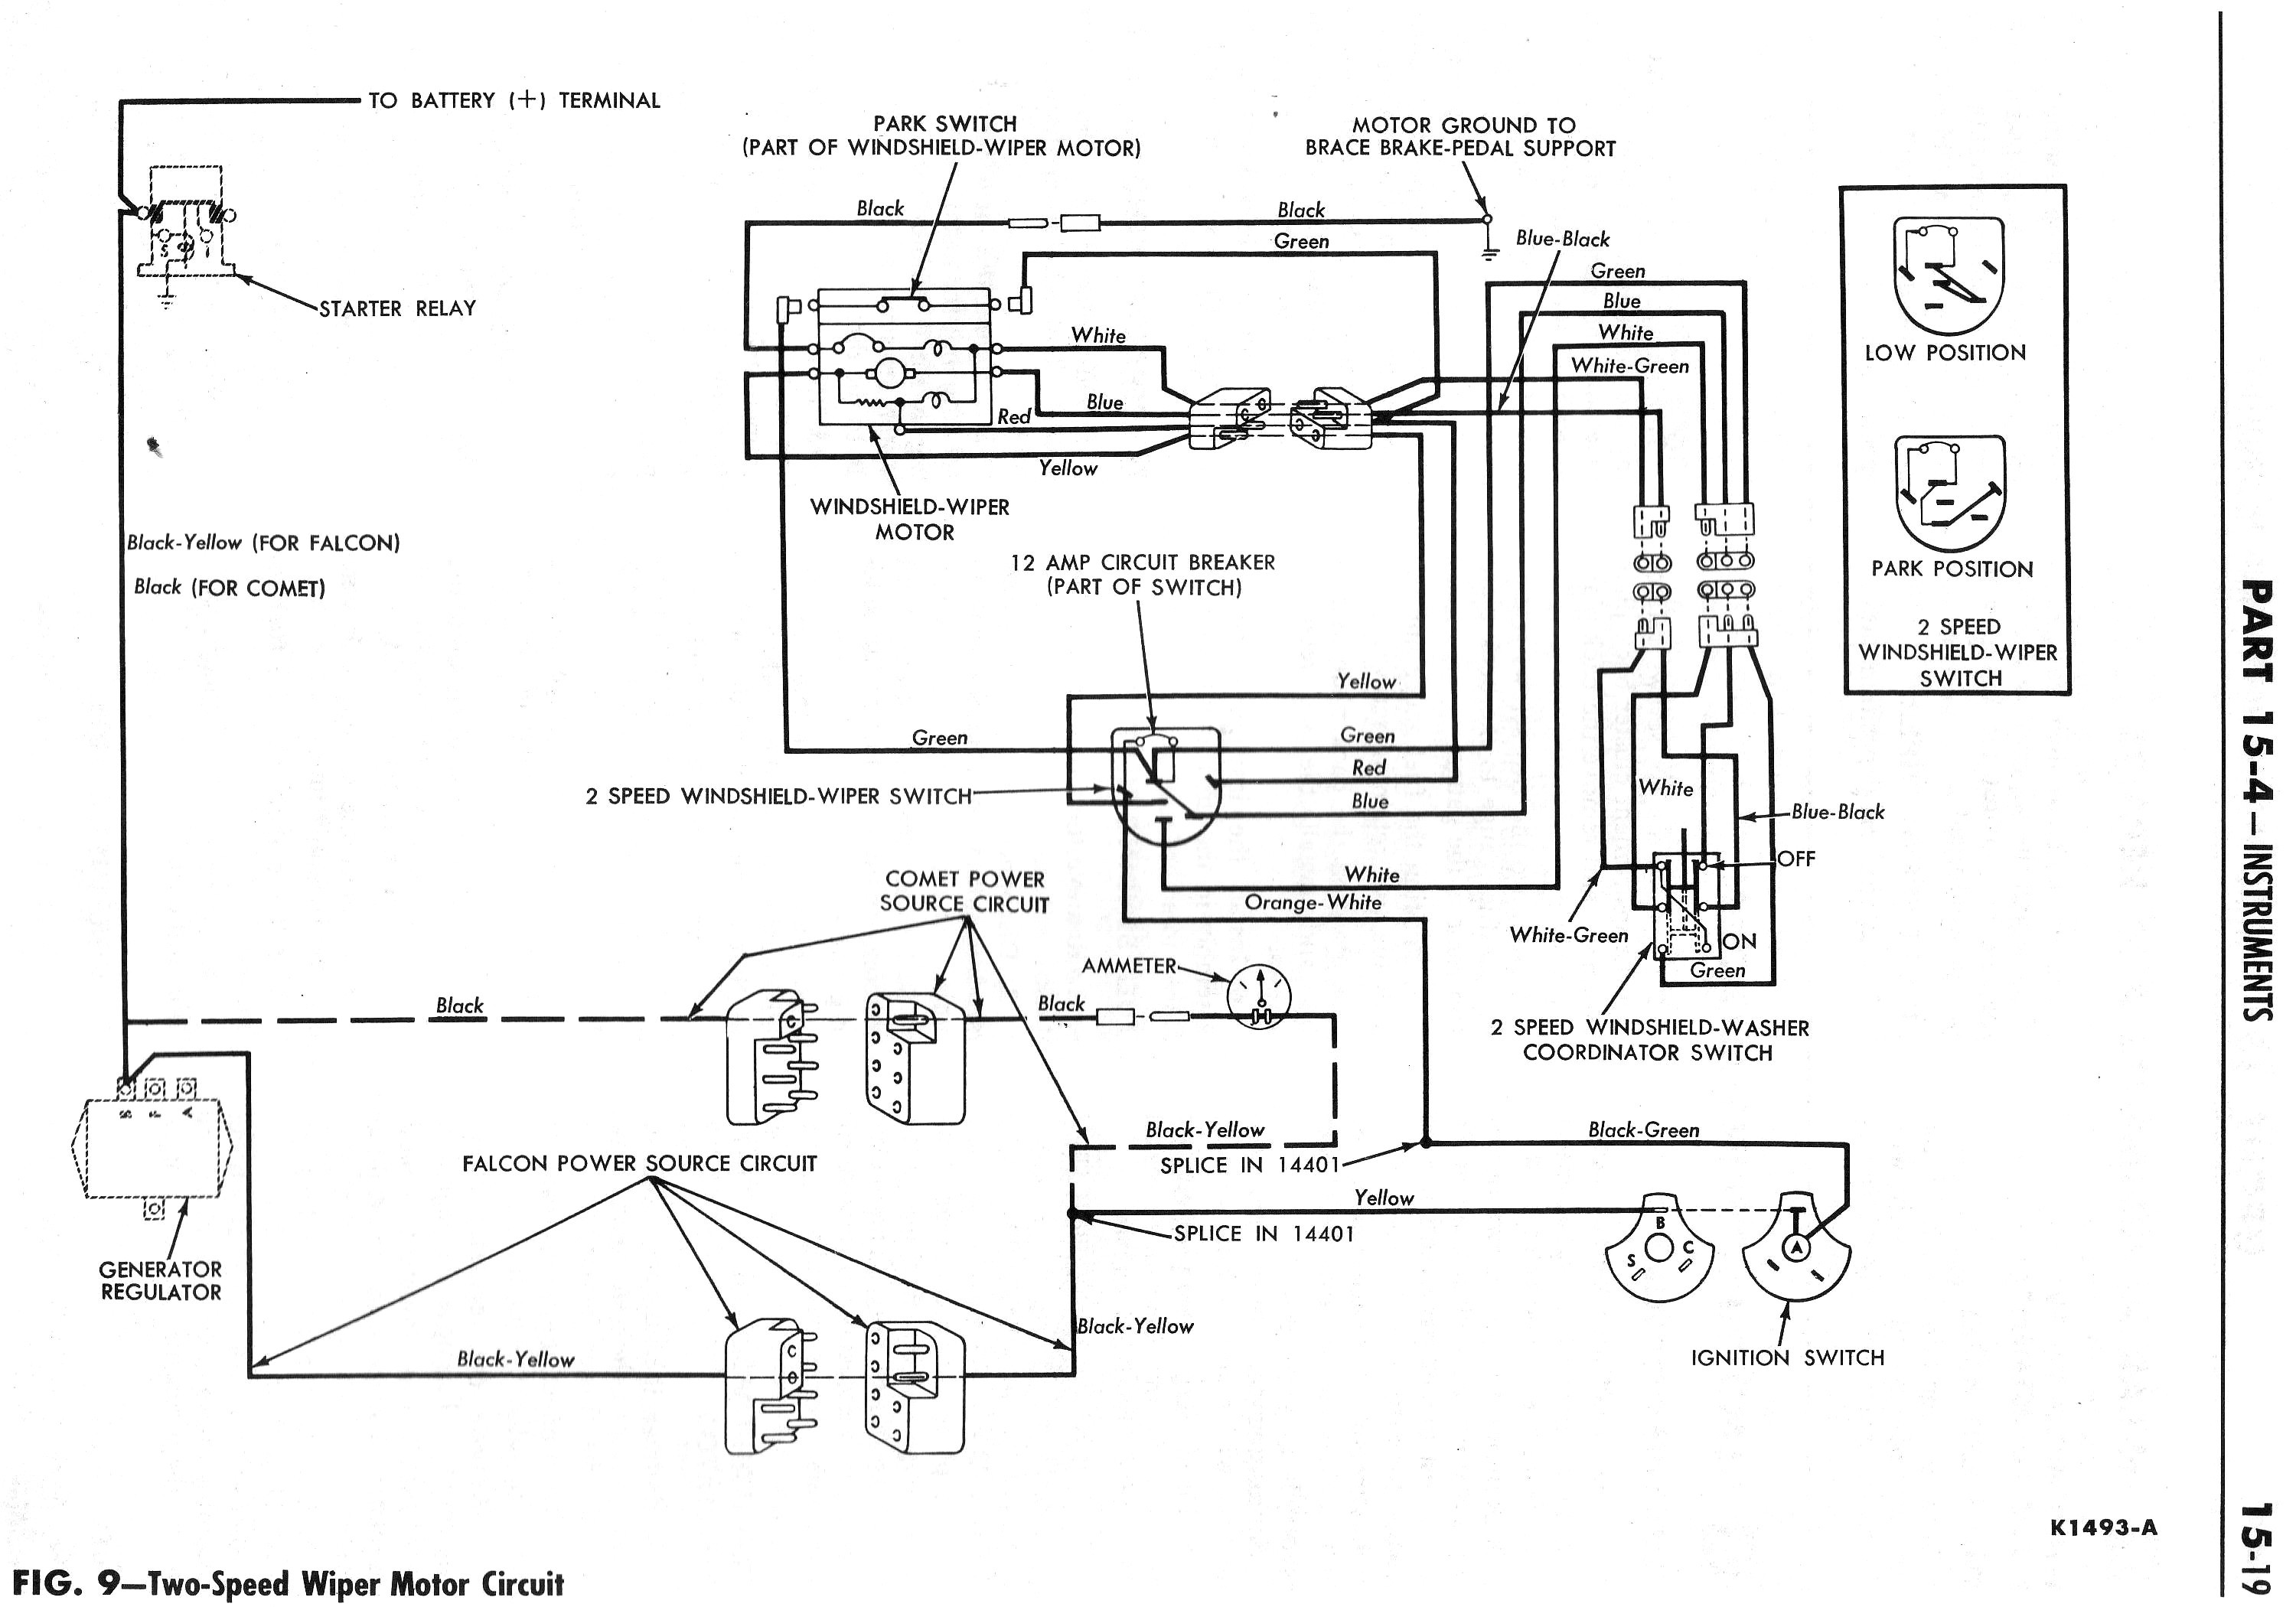 2003 Lincoln Ls V8 Engine Diagram How To Install Replace Spark Plugs 95 Town  Car Air Suspension Wiring 2003 Lincoln Town Car Wiper Wiring Diagram